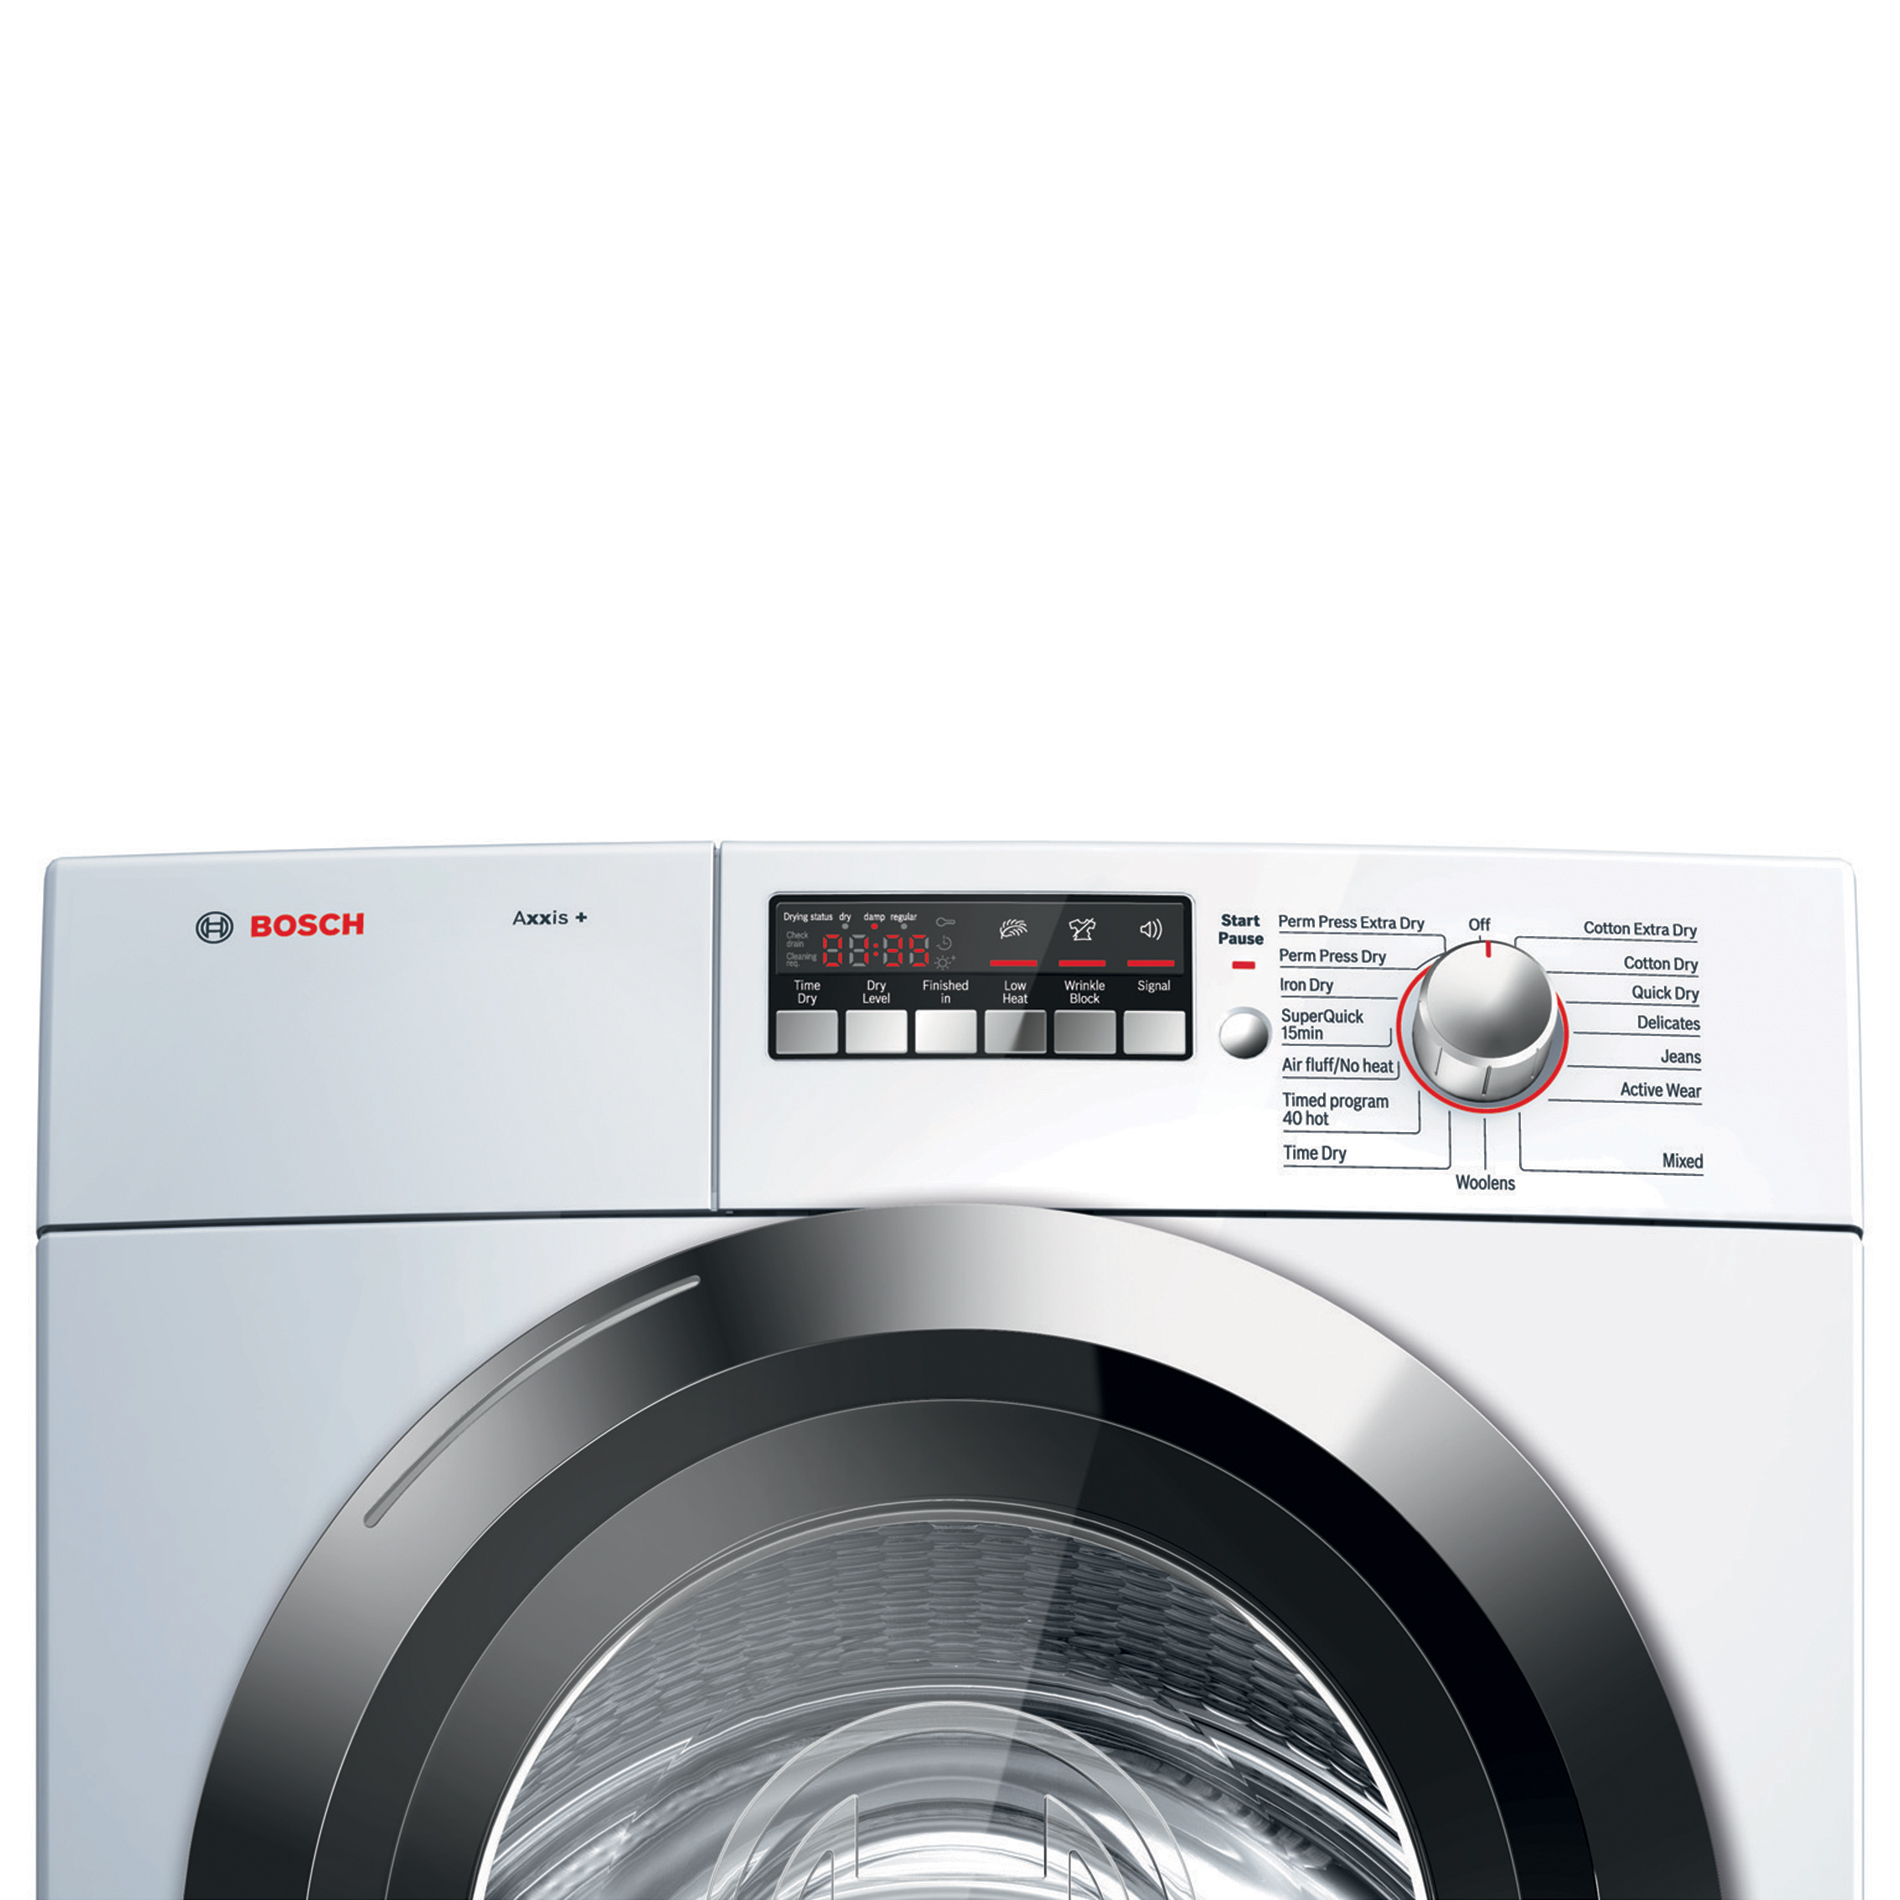 Bosch Axxis Plus 4.0 cu. ft. Condensation Electric Dryer - White